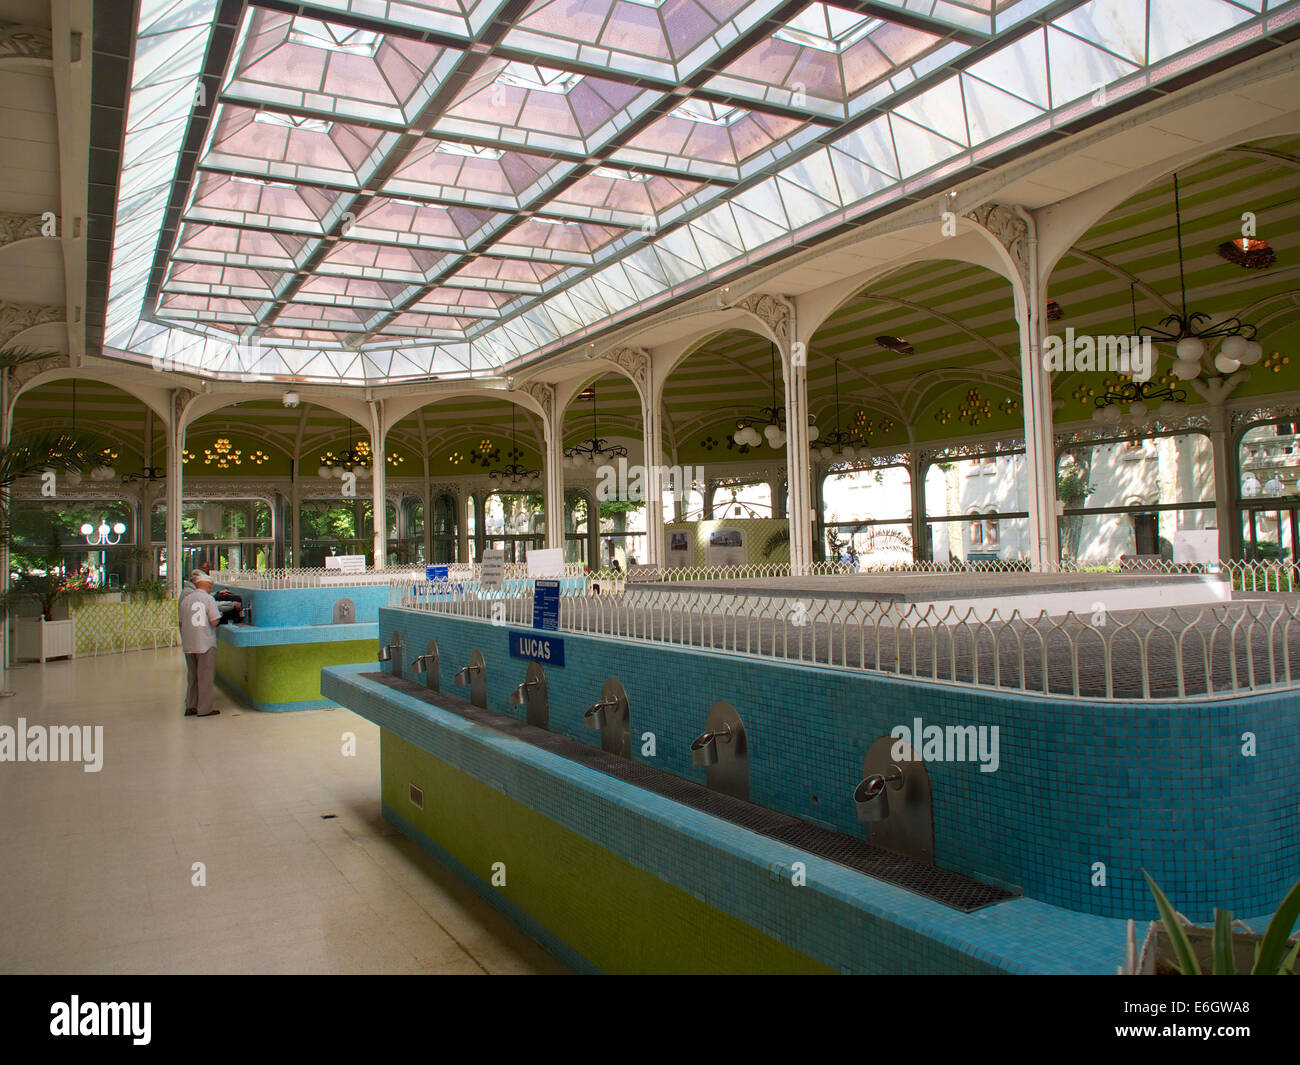 Water taps in the Halle des Sources at Vichy thermal spa, Auvergne, France, Europe - Stock Image